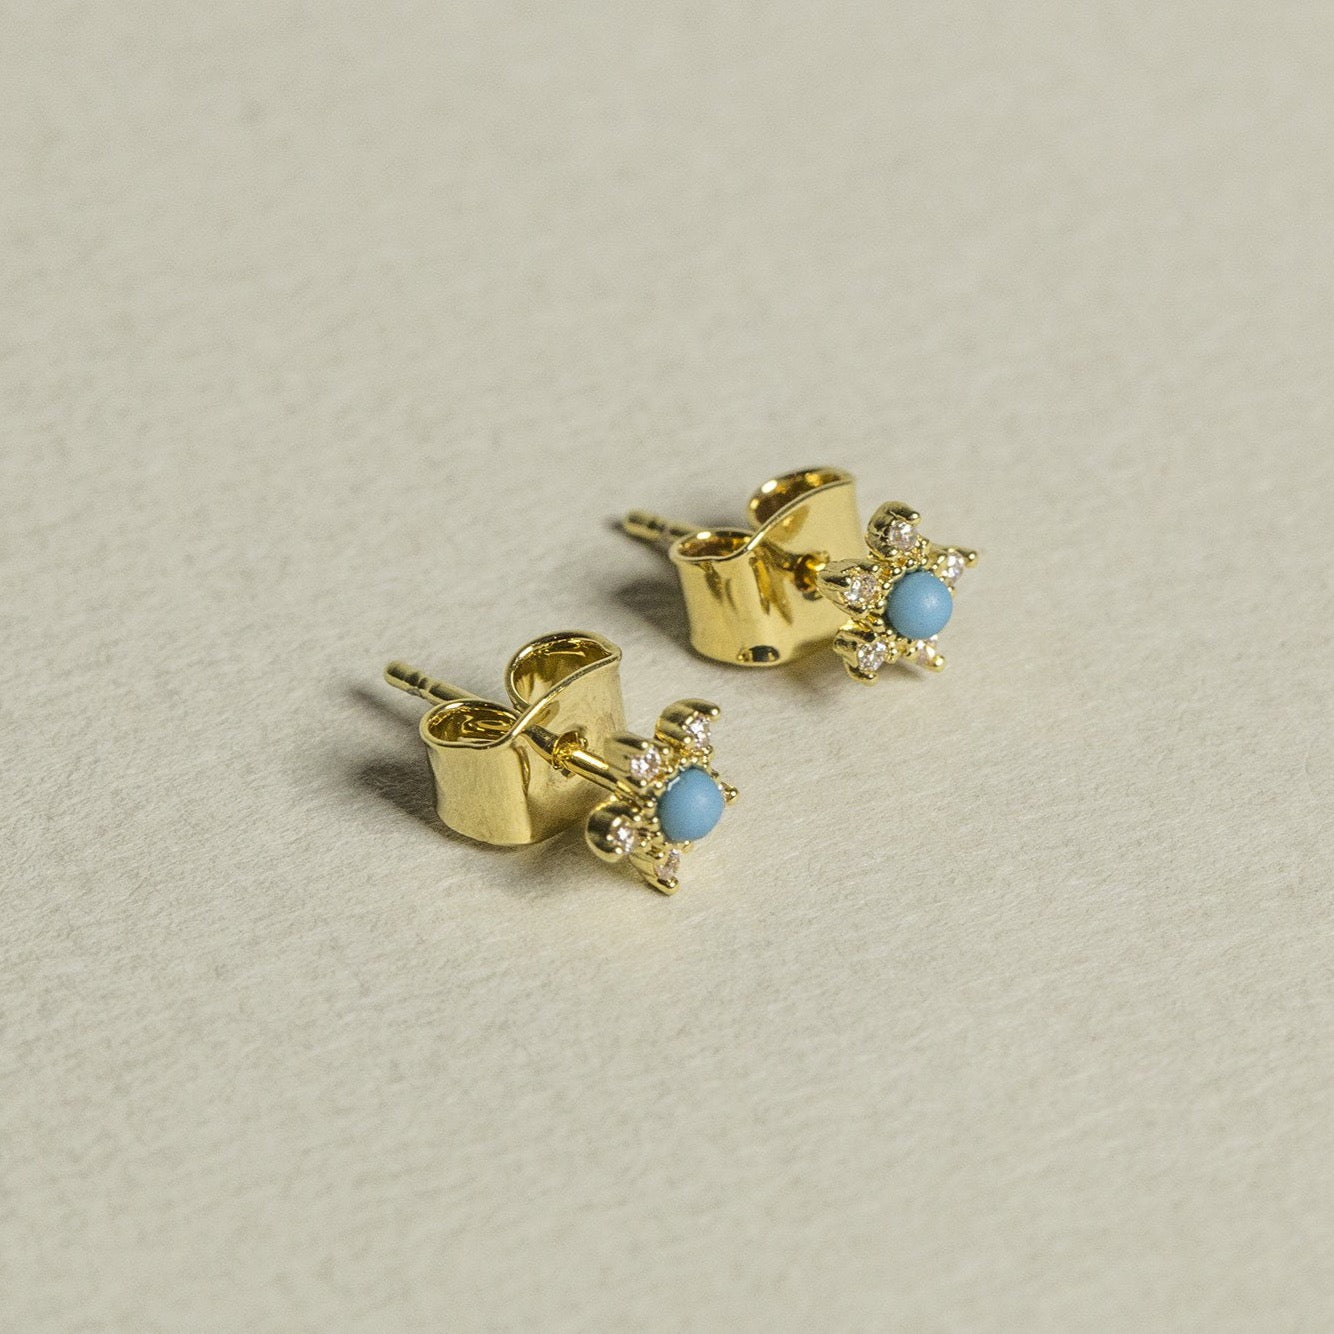 made of gold plated silver, these stud will brighten any ensemble!